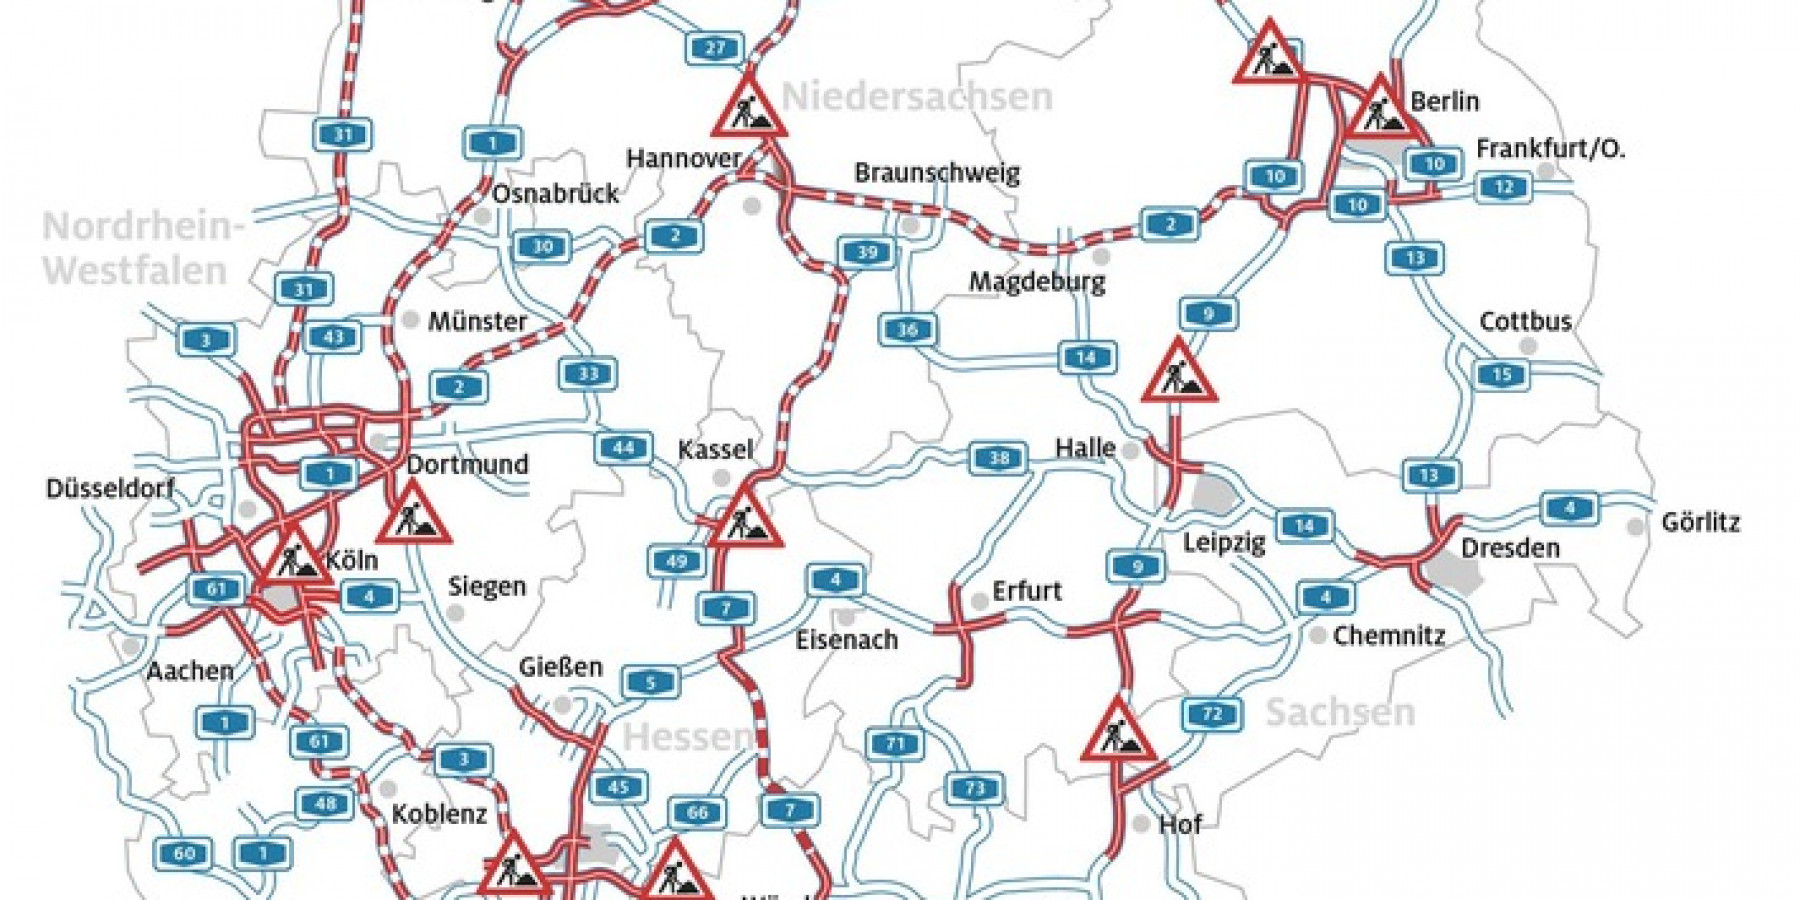 Sommerferien-Start in fünf Bundesländern